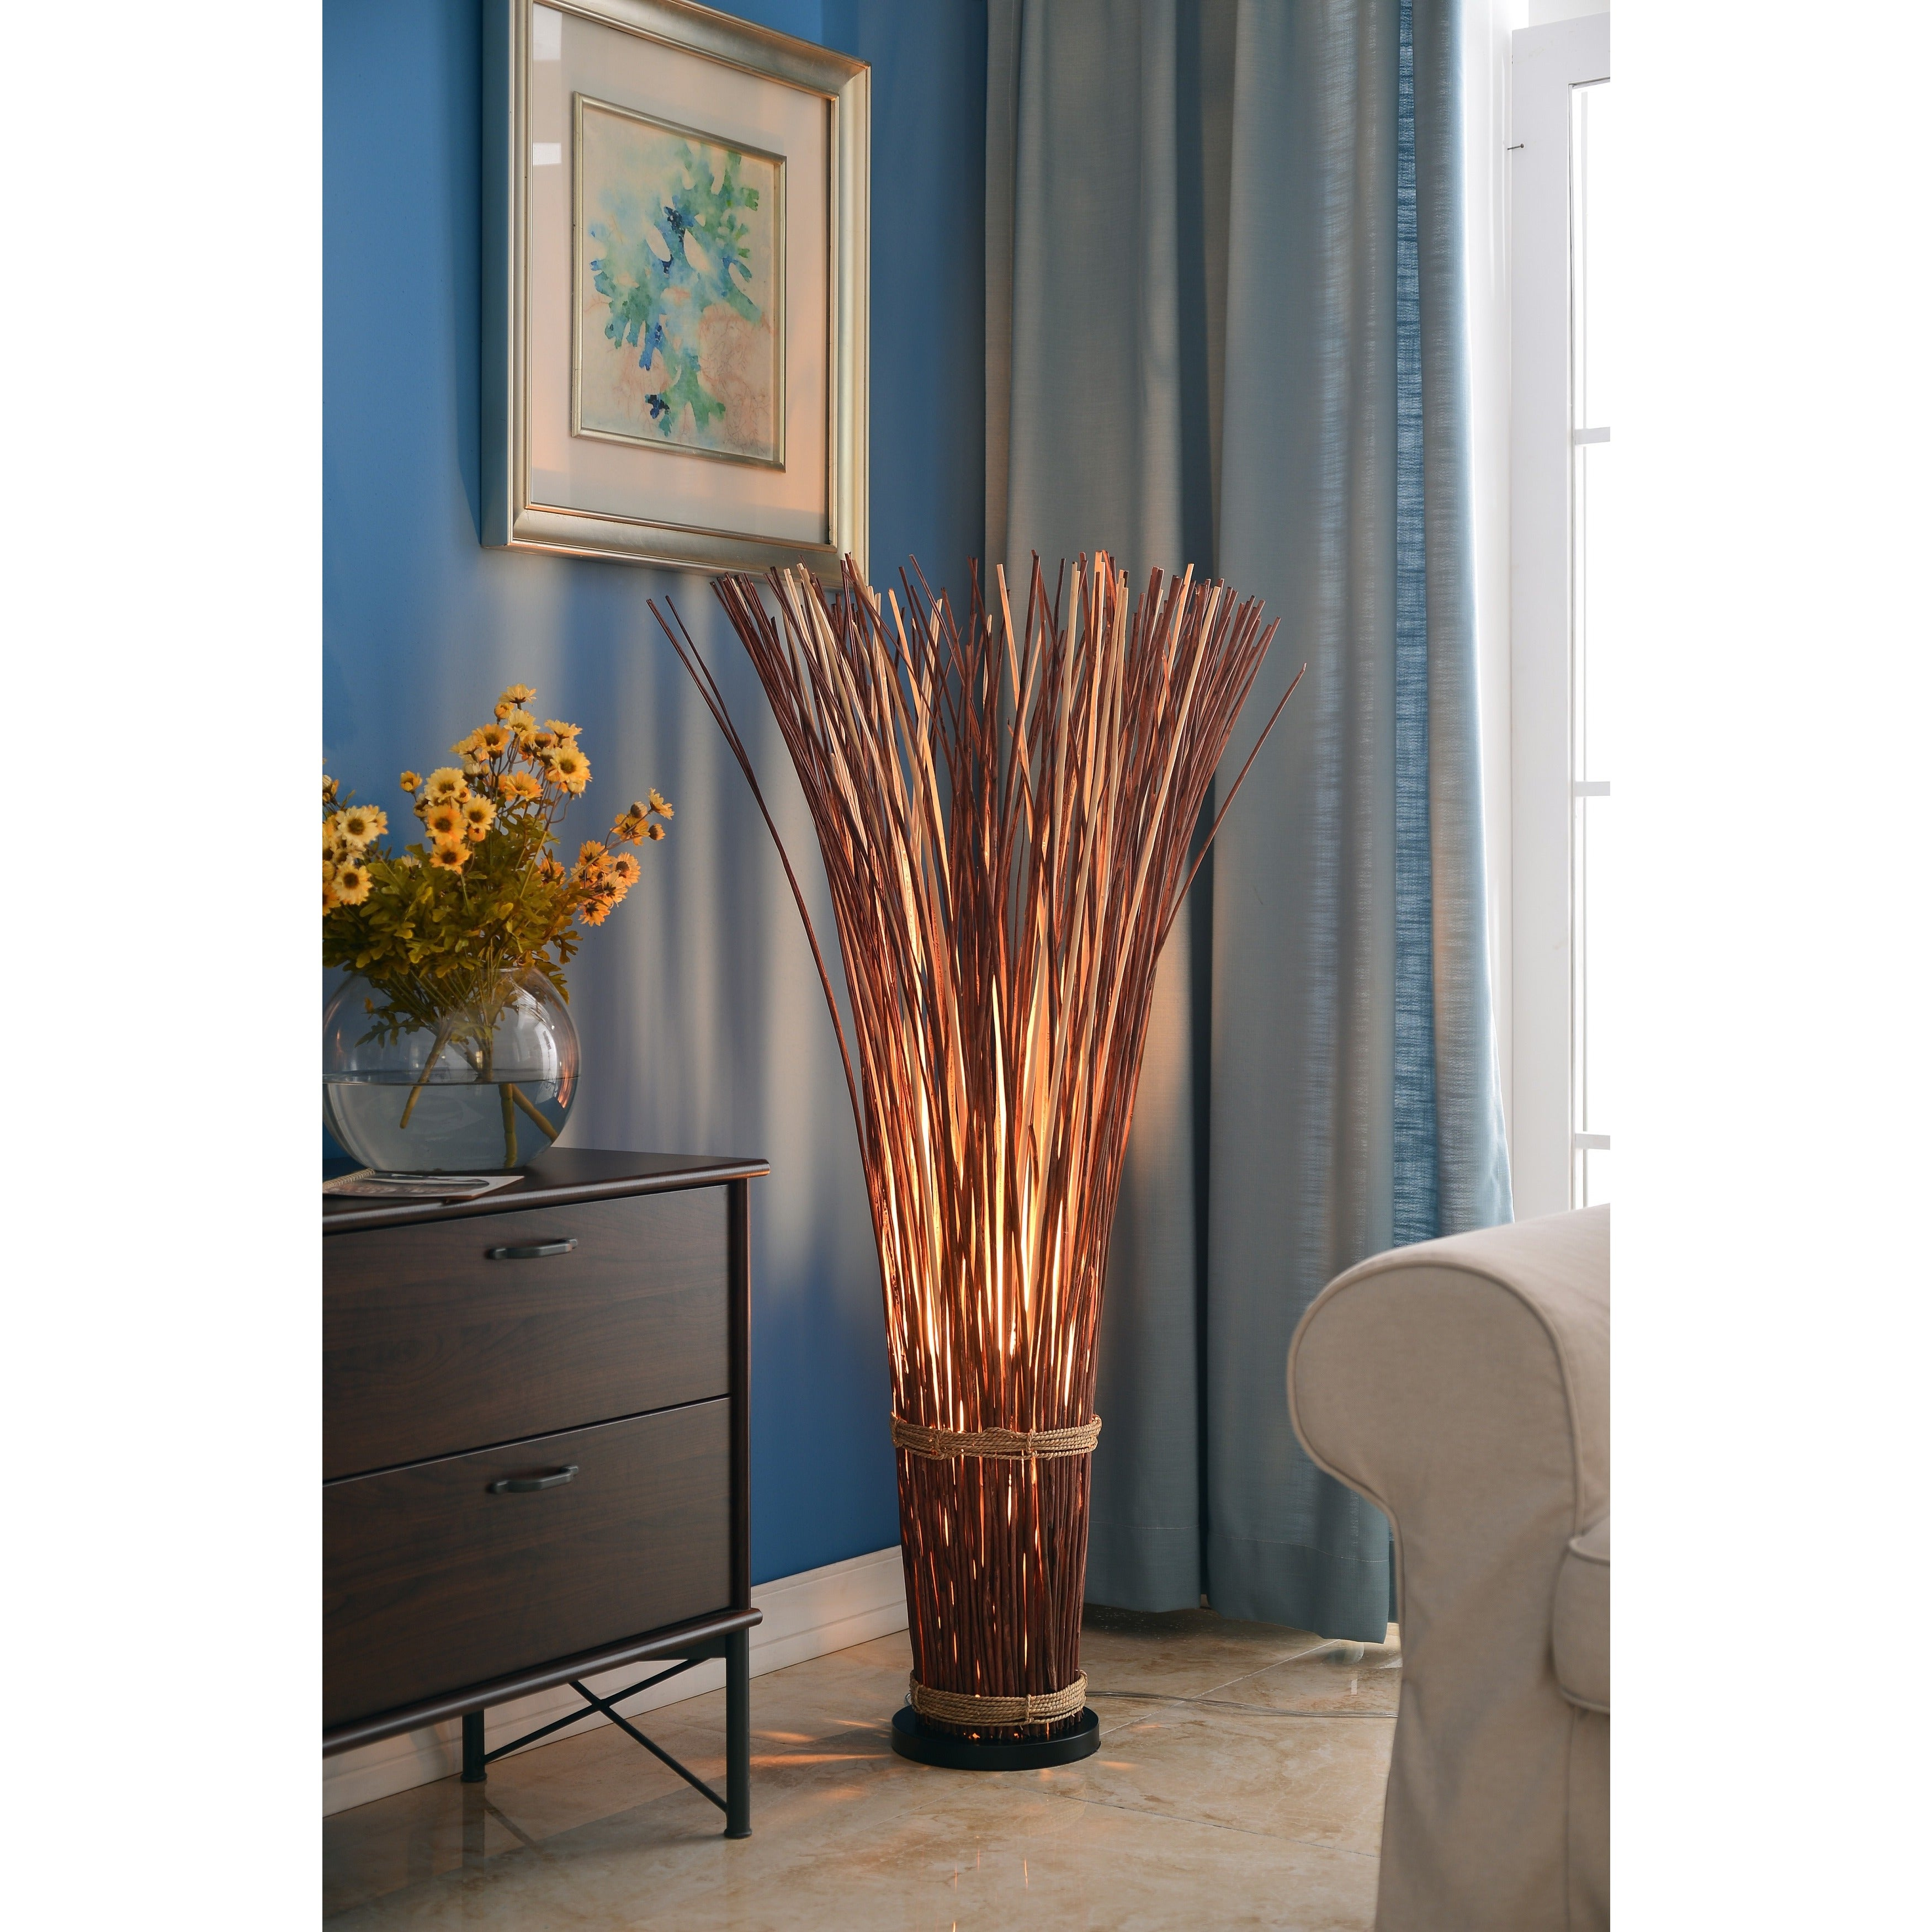 Design Craft Coastal Natural Reed 46 Inch Floor Lamp   Free Shipping Today    Overstock.com   14474411